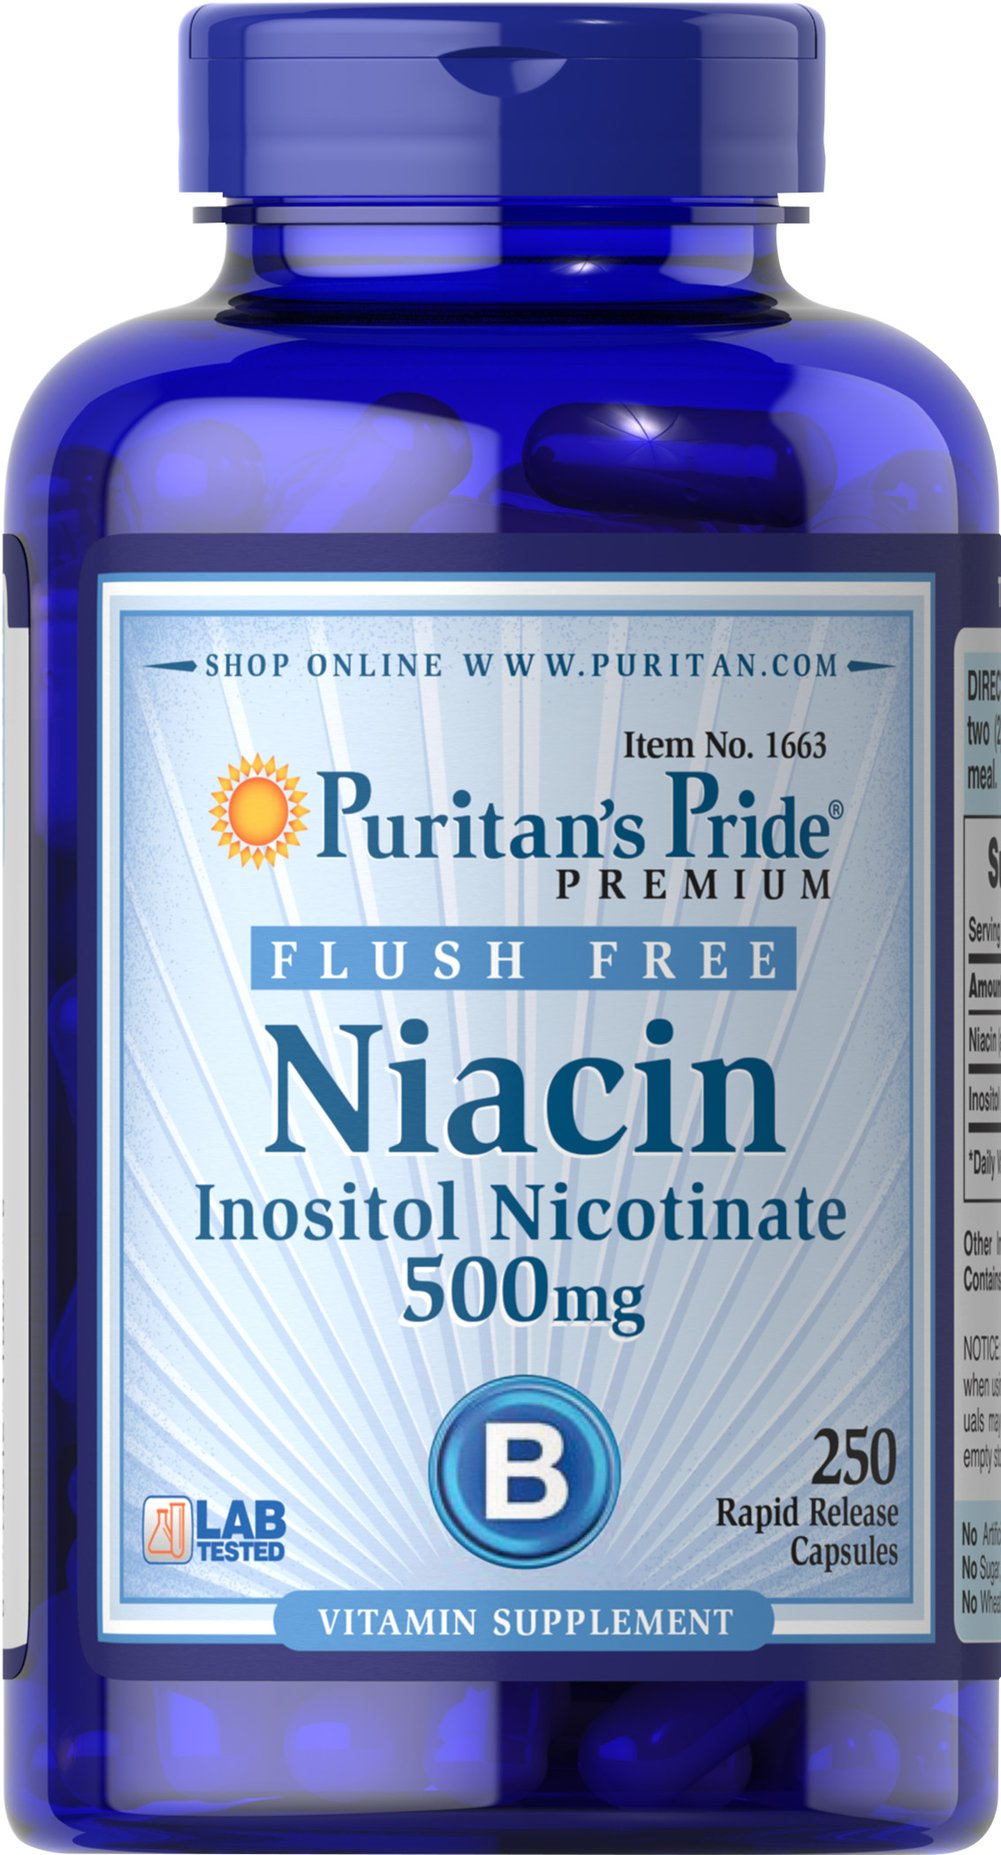 Flush Free Niacin 500 mg <p>Supports heart and cardiovascular wellness**</p><p>Promotes healthy circulation**</p><p>Contributes to energy metabolism**</p><p>Helps metabolize carbohydrates and protein**</p><p>Laboratory Tested</p> 250 Capsules 500 mg $36.99